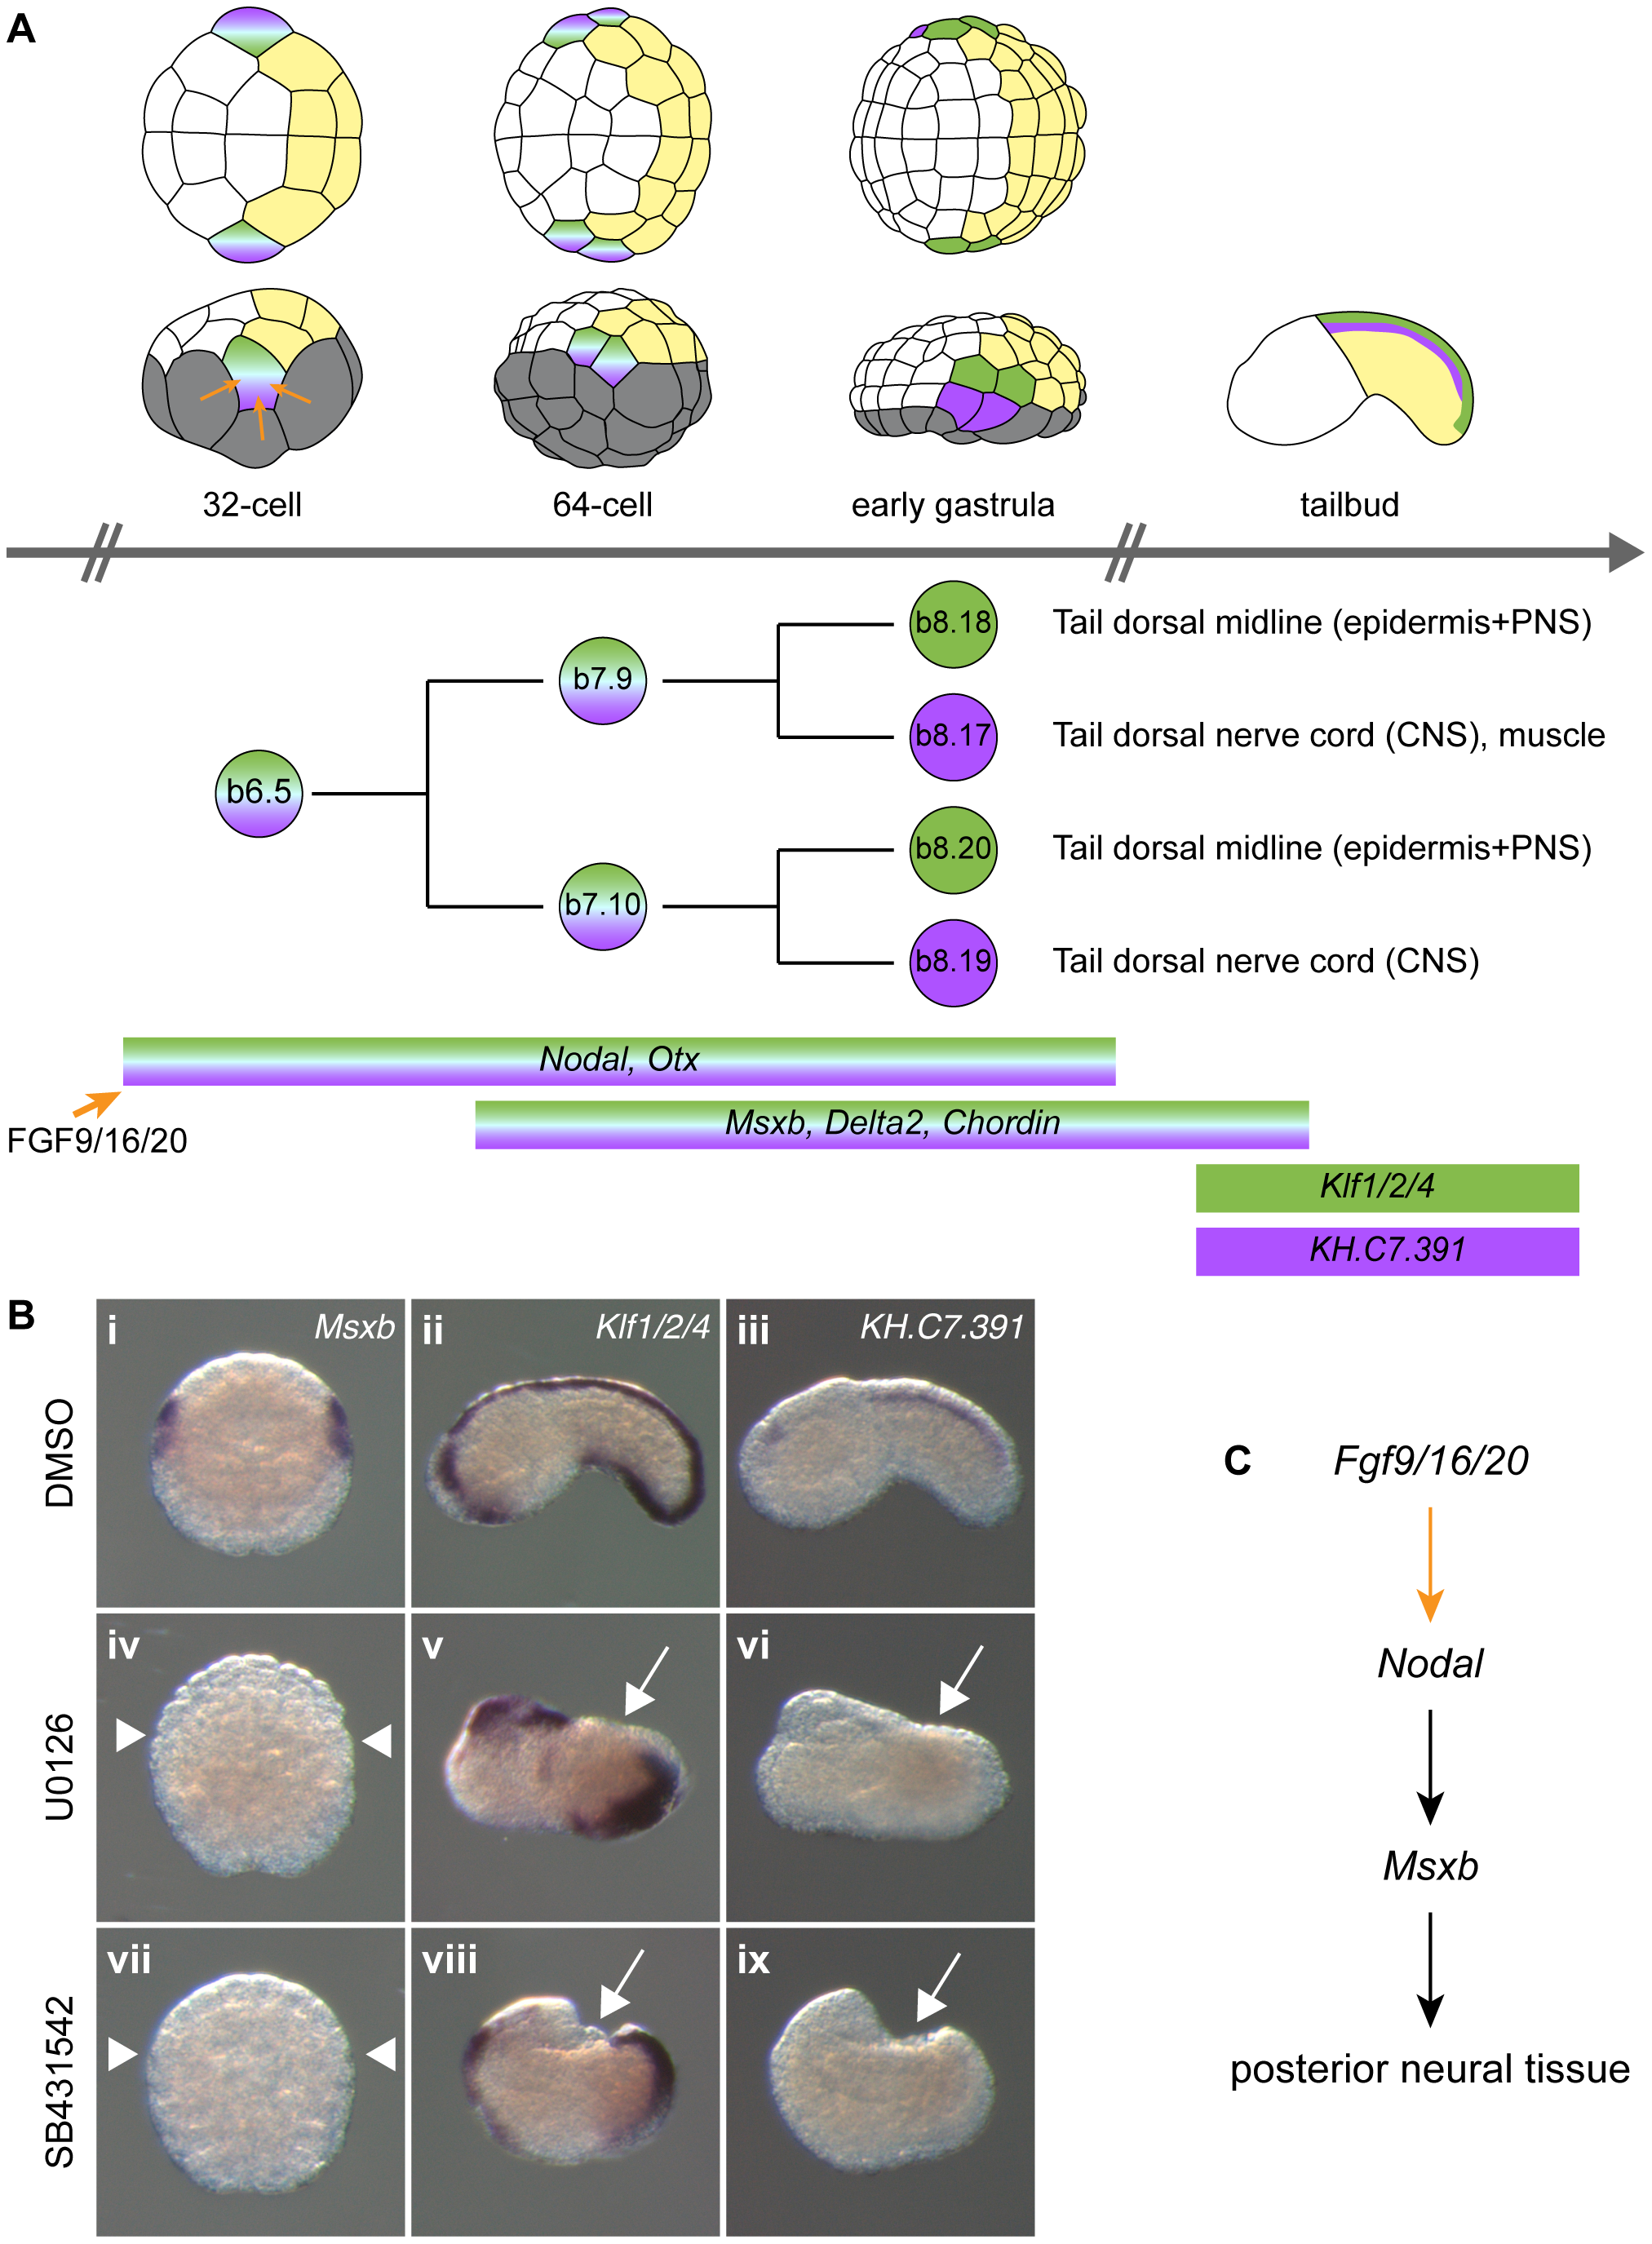 FGF and Nodal signaling are required for posterior neural tissue formation.